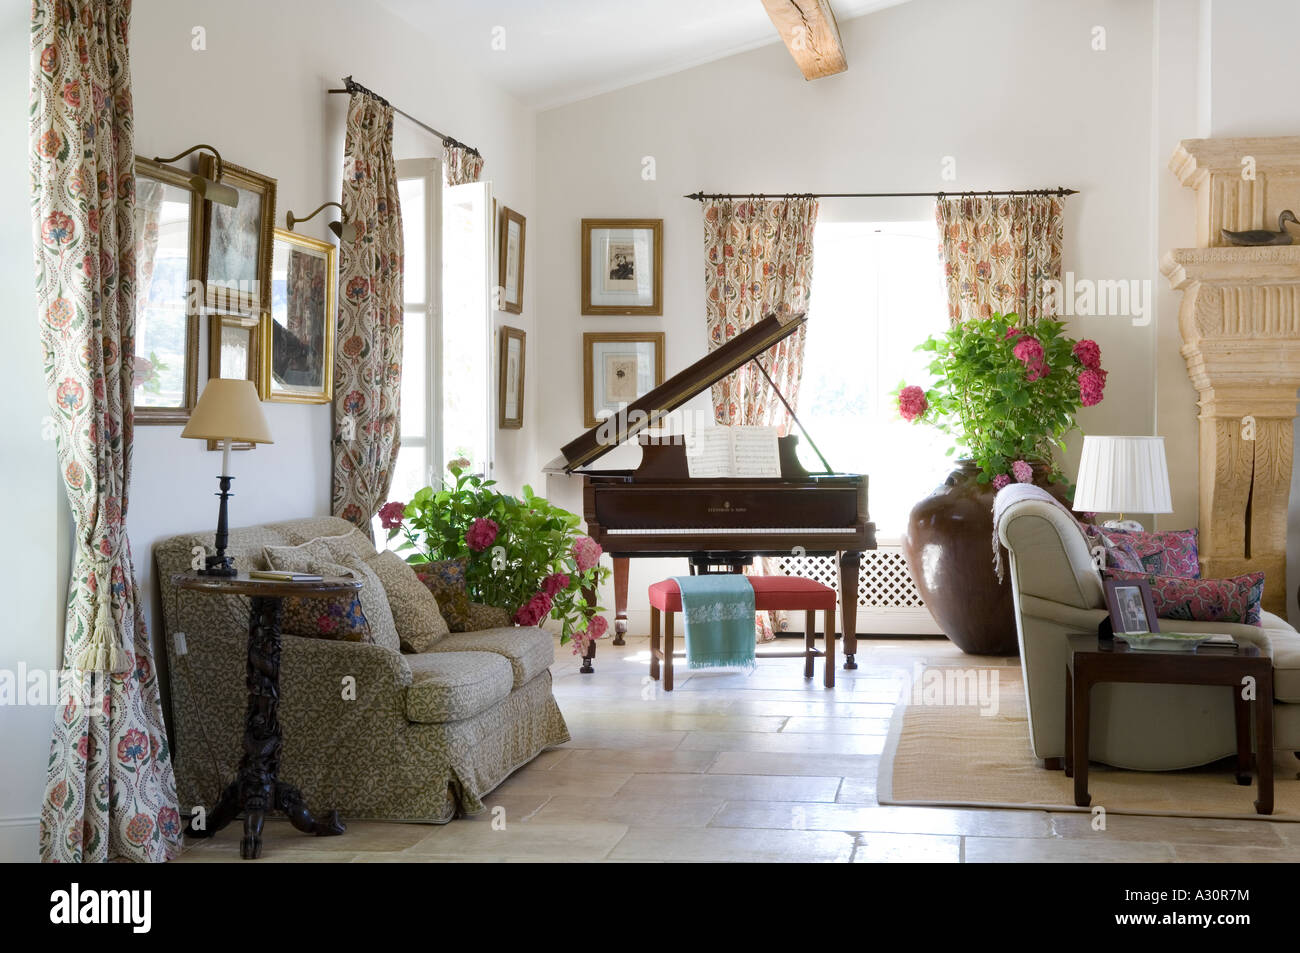 Grand Piano In Living Room With Sofas